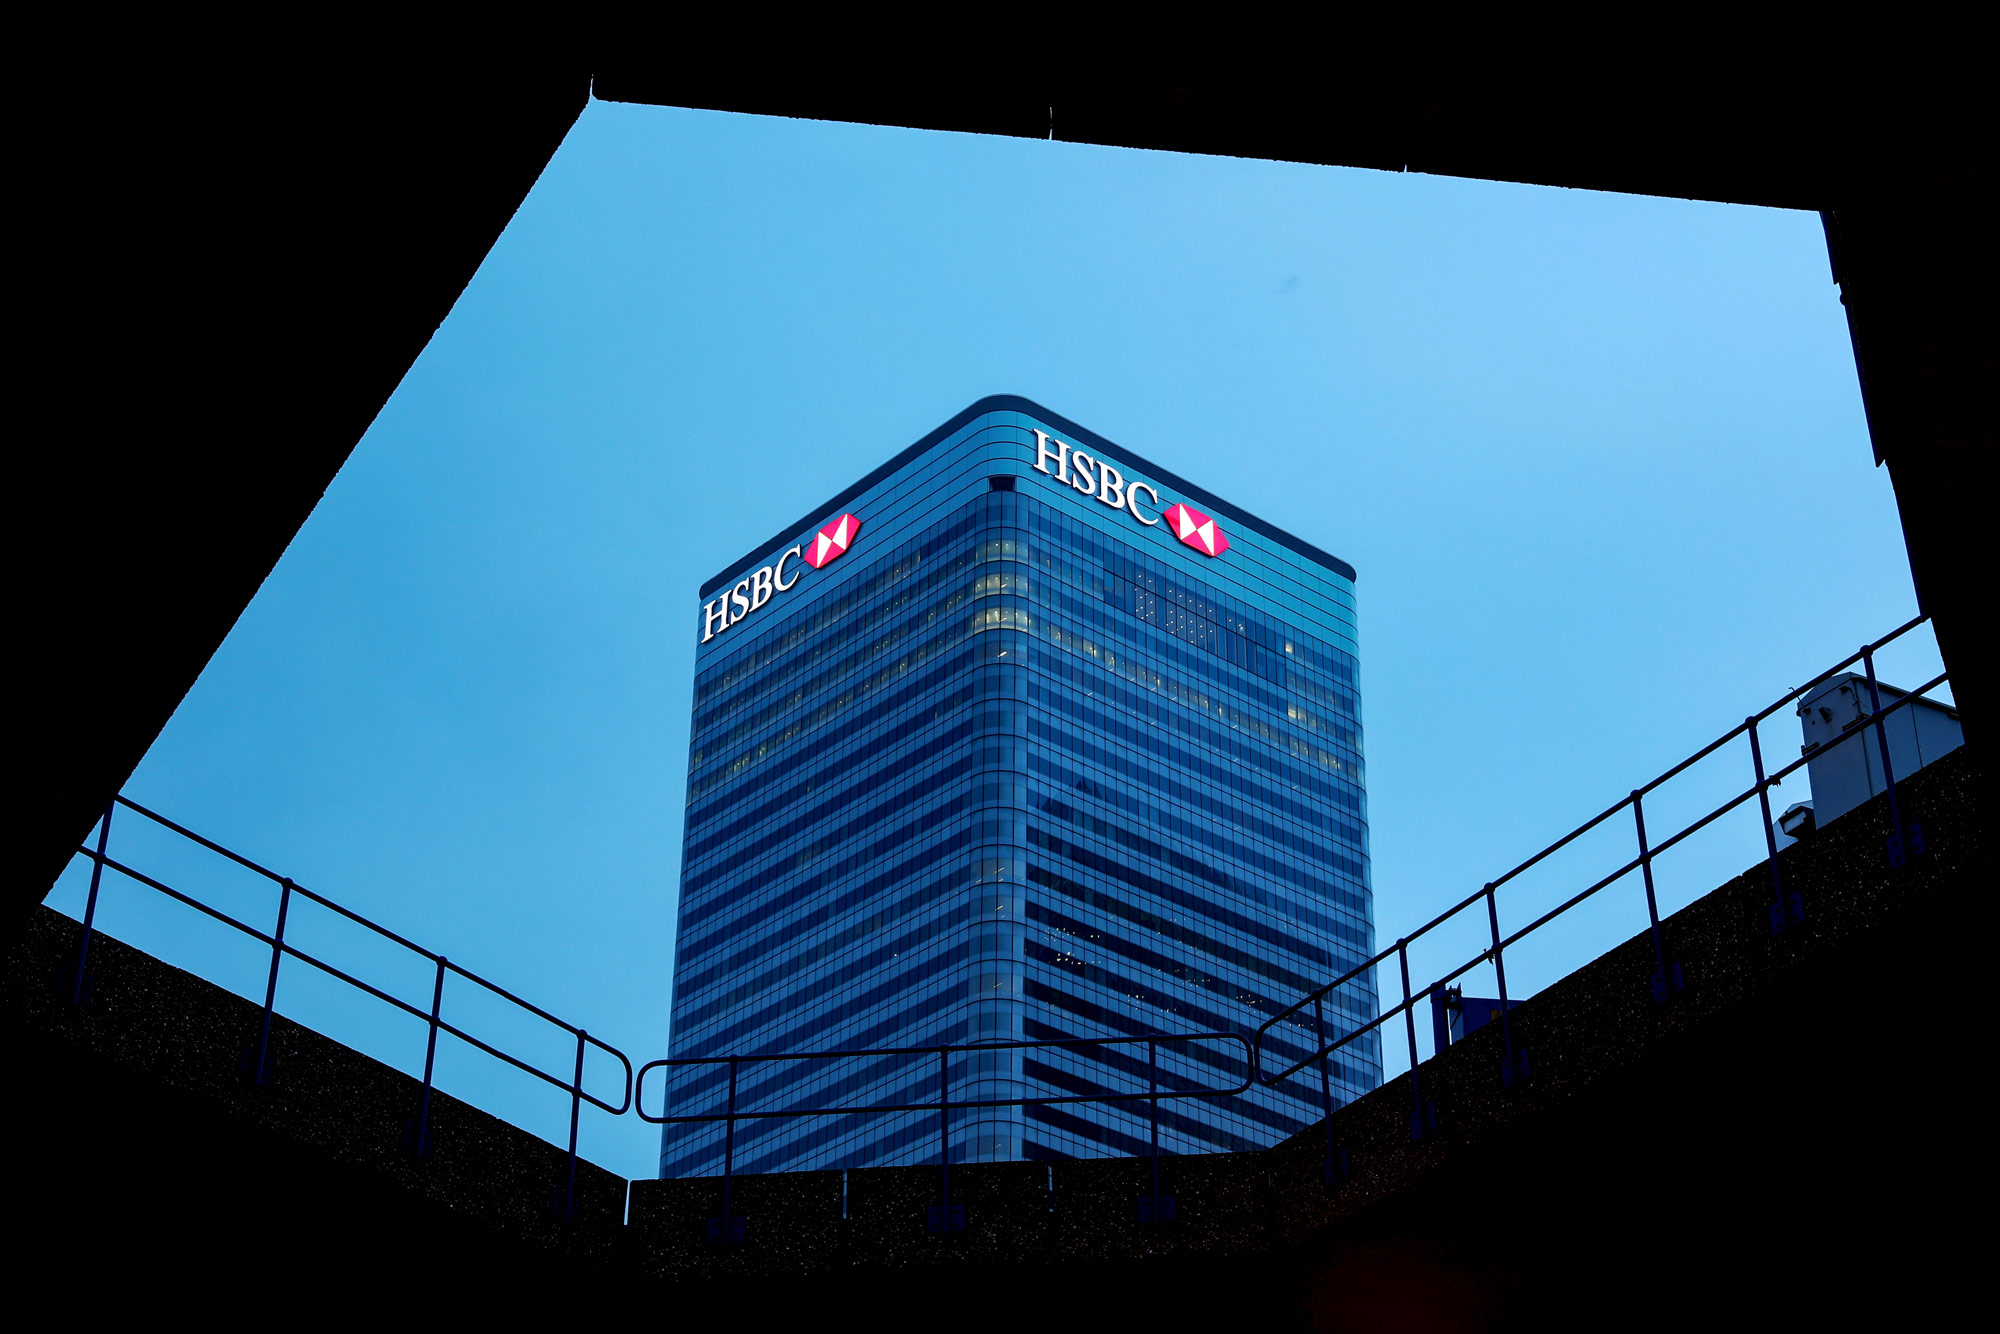 HSBC Sexual Harassment Case Shows Banks' Struggles in MeToo